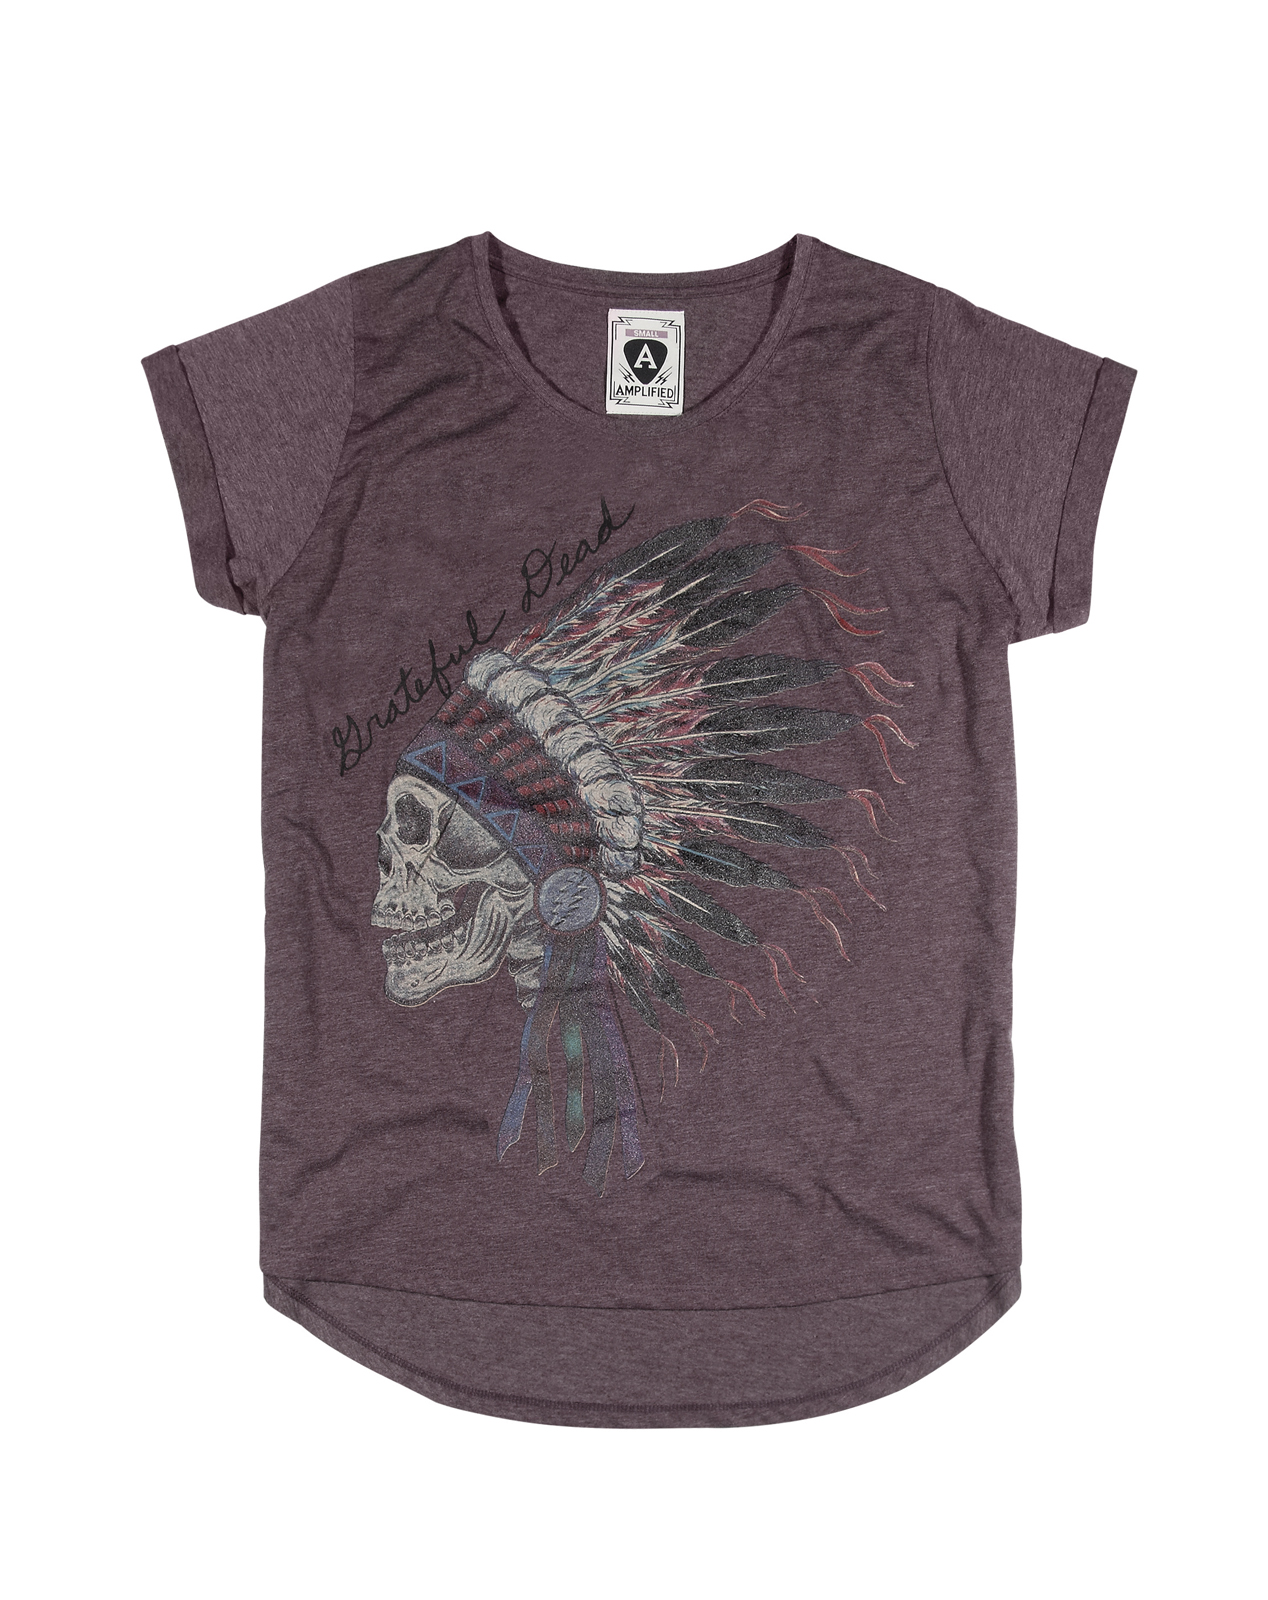 c672e625b Image is loading Amplified-Womens-Grateful-Dead-Indian-Ladies-Short-Sleeve-